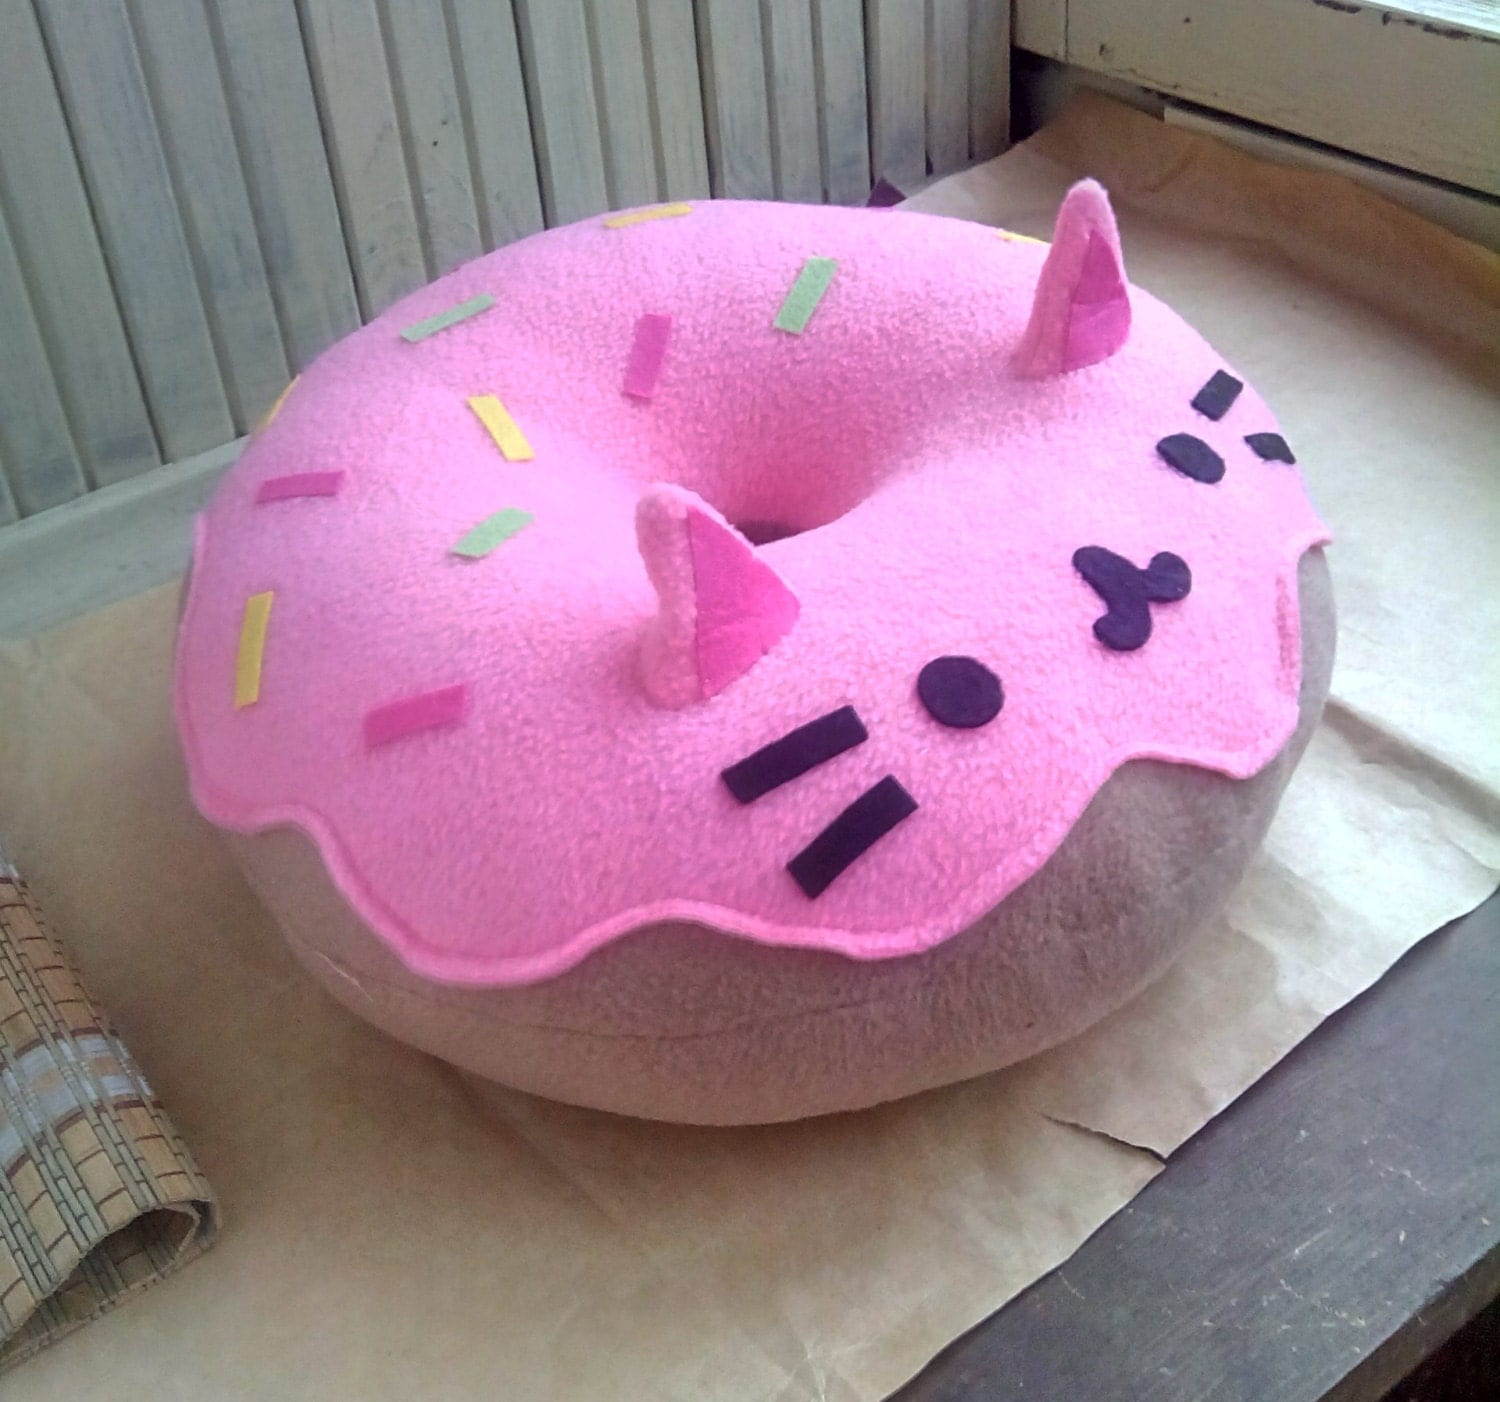 anime bean bag chair designer covers gregory hills nsw cat pillow kitty donut plush pink free shipping